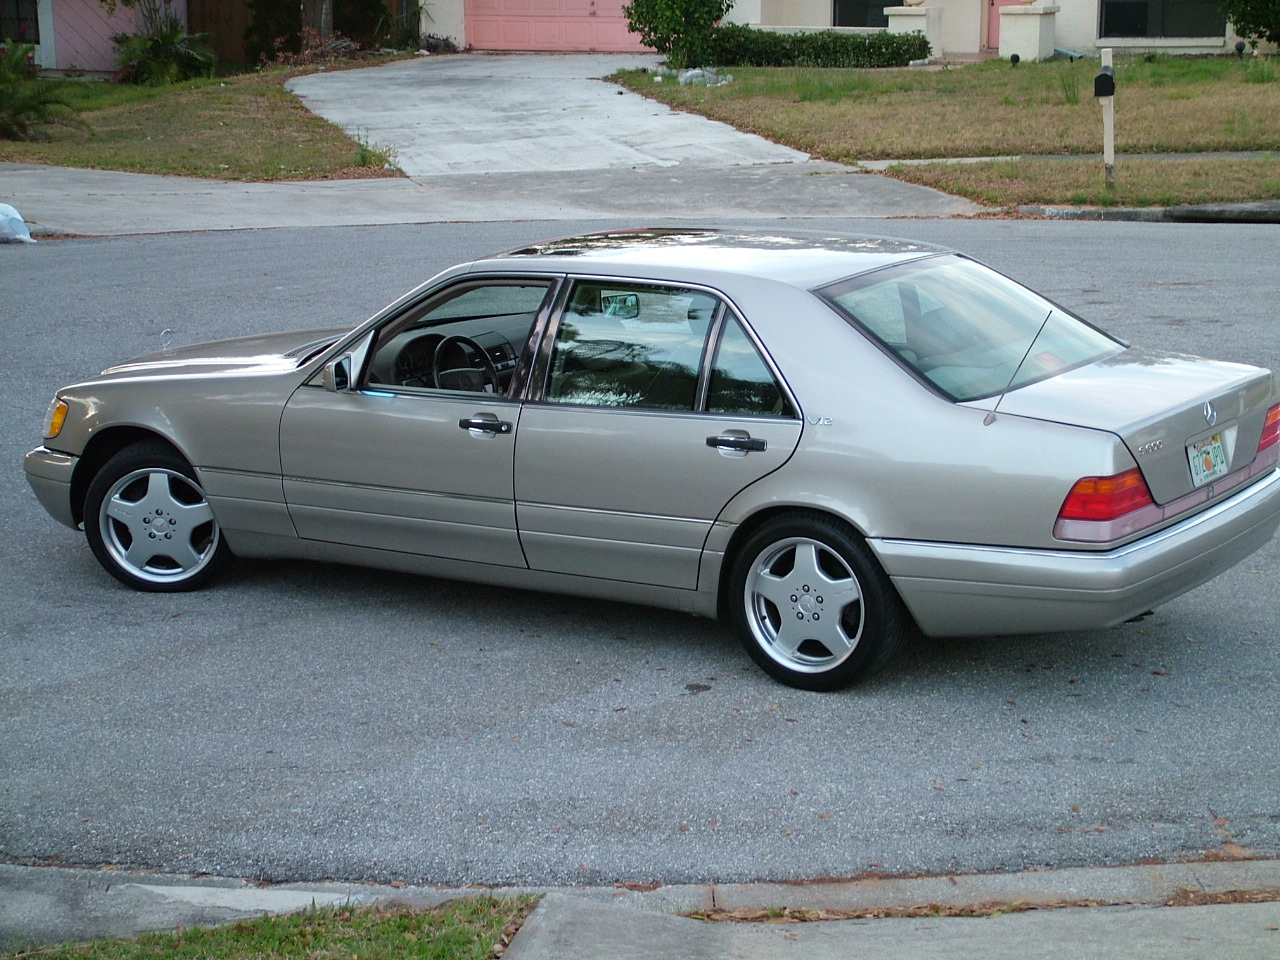 1996 mercedes benz s class information and photos zombiedrive 1996 mercedes benz s class 10 mercedes benz s class 10 fandeluxe Choice Image